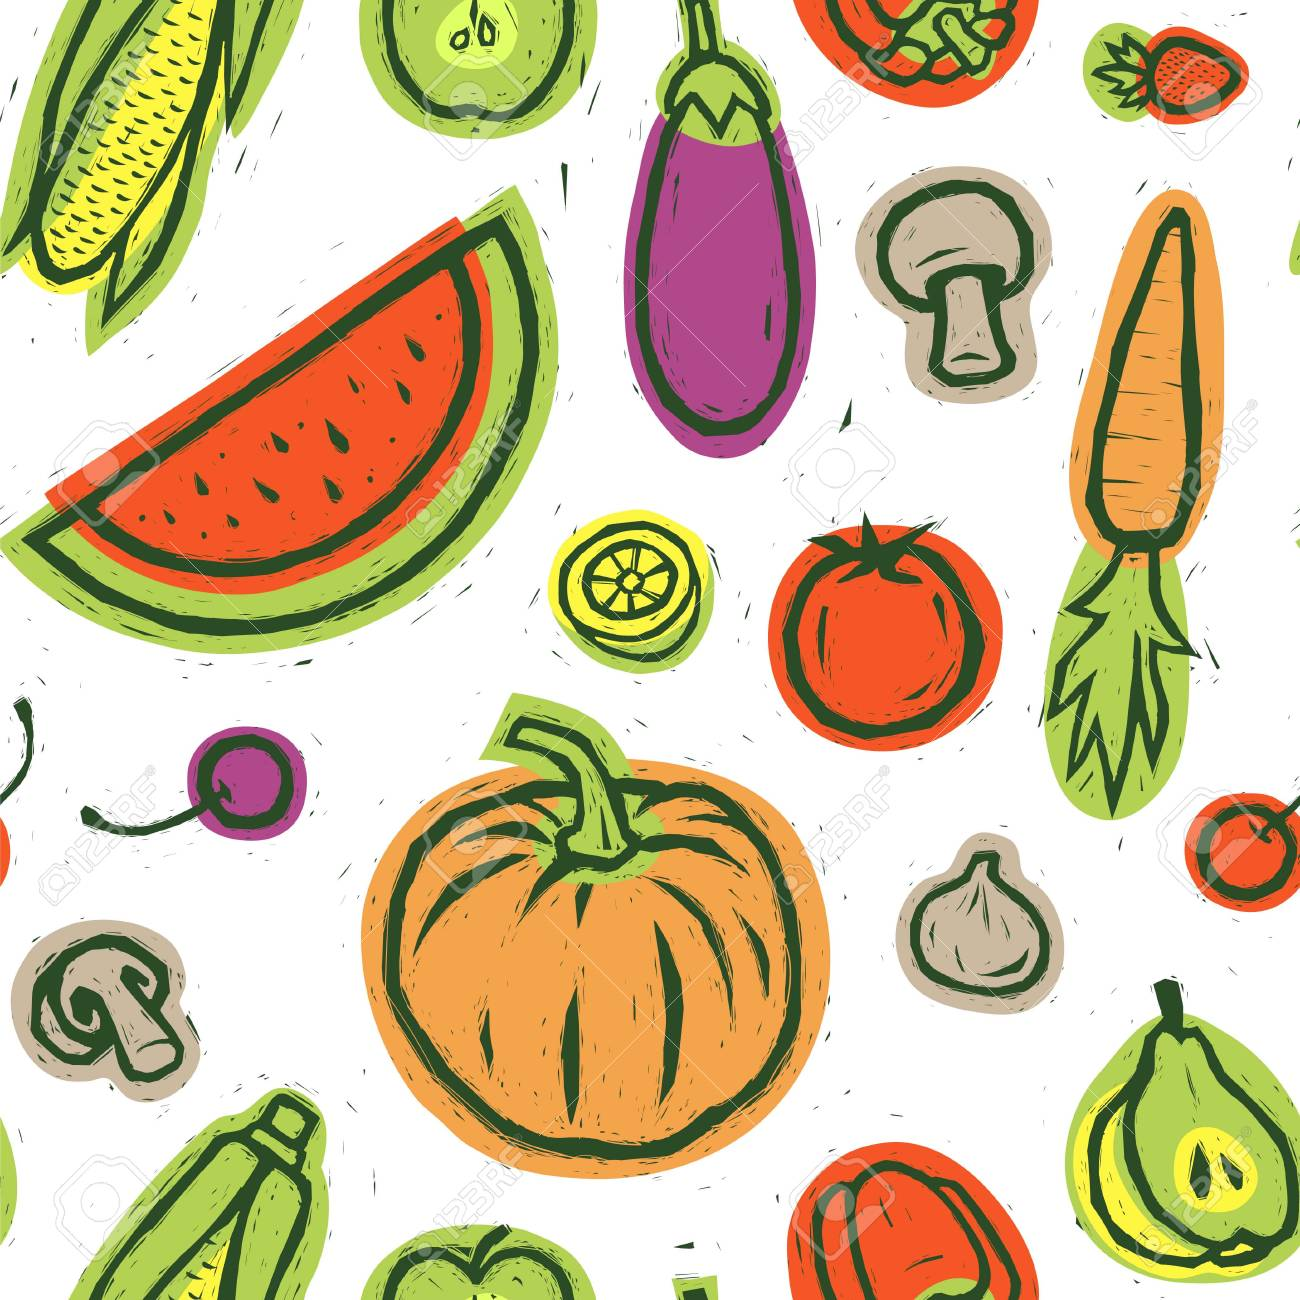 Colorful Vegetables And Fruits Vector Illustration Food Print